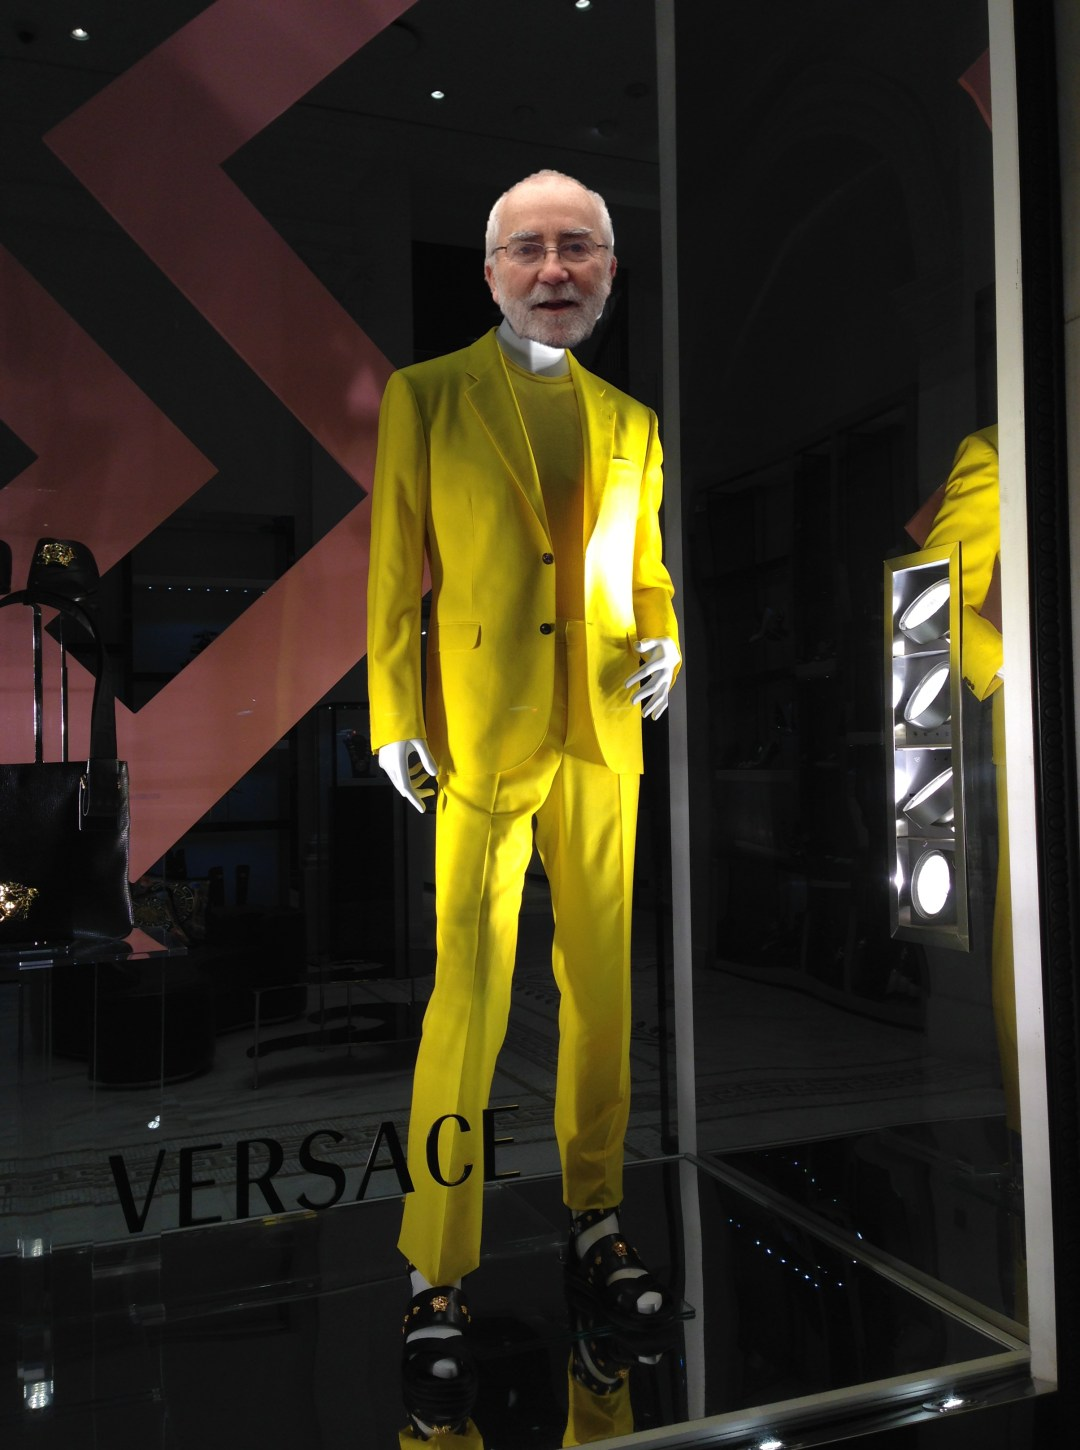 Burke photoshopped into Versace window on Fifth Avenue in New York